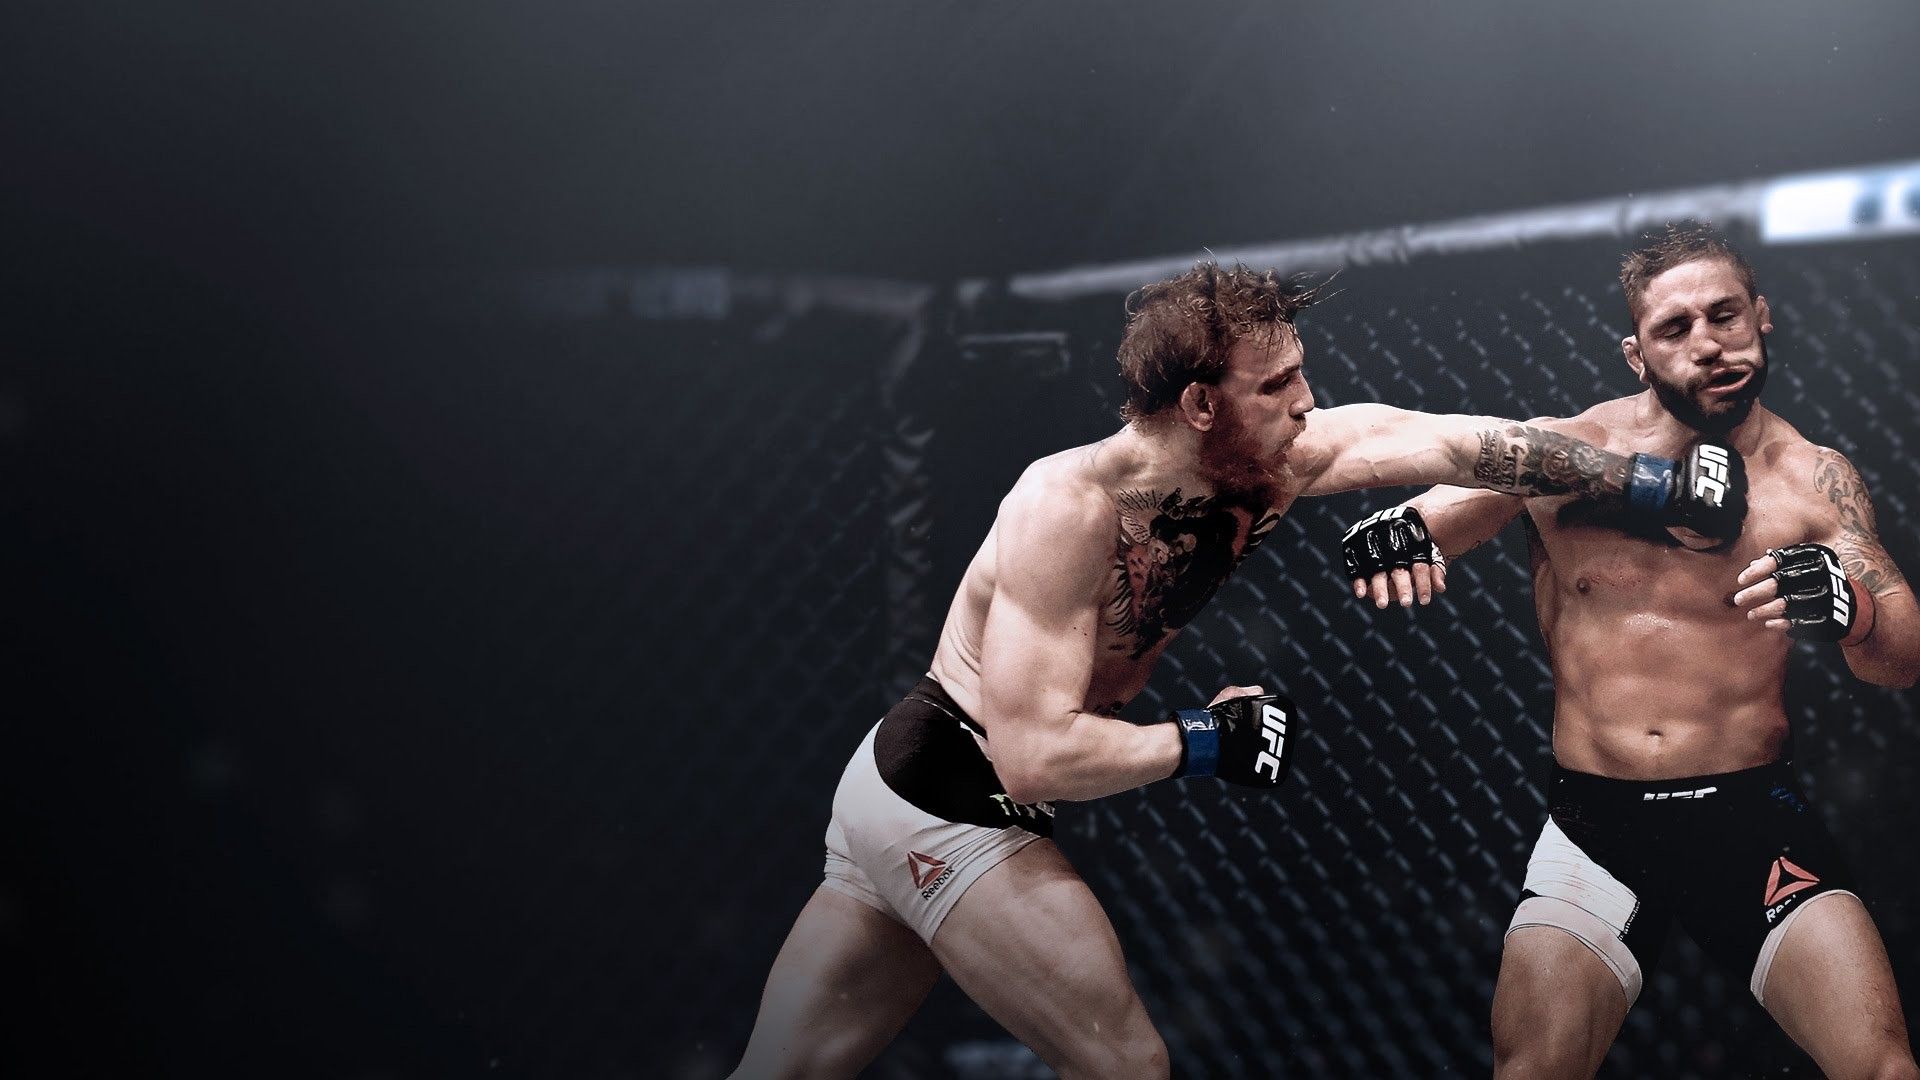 ufc wallpapers 69 images